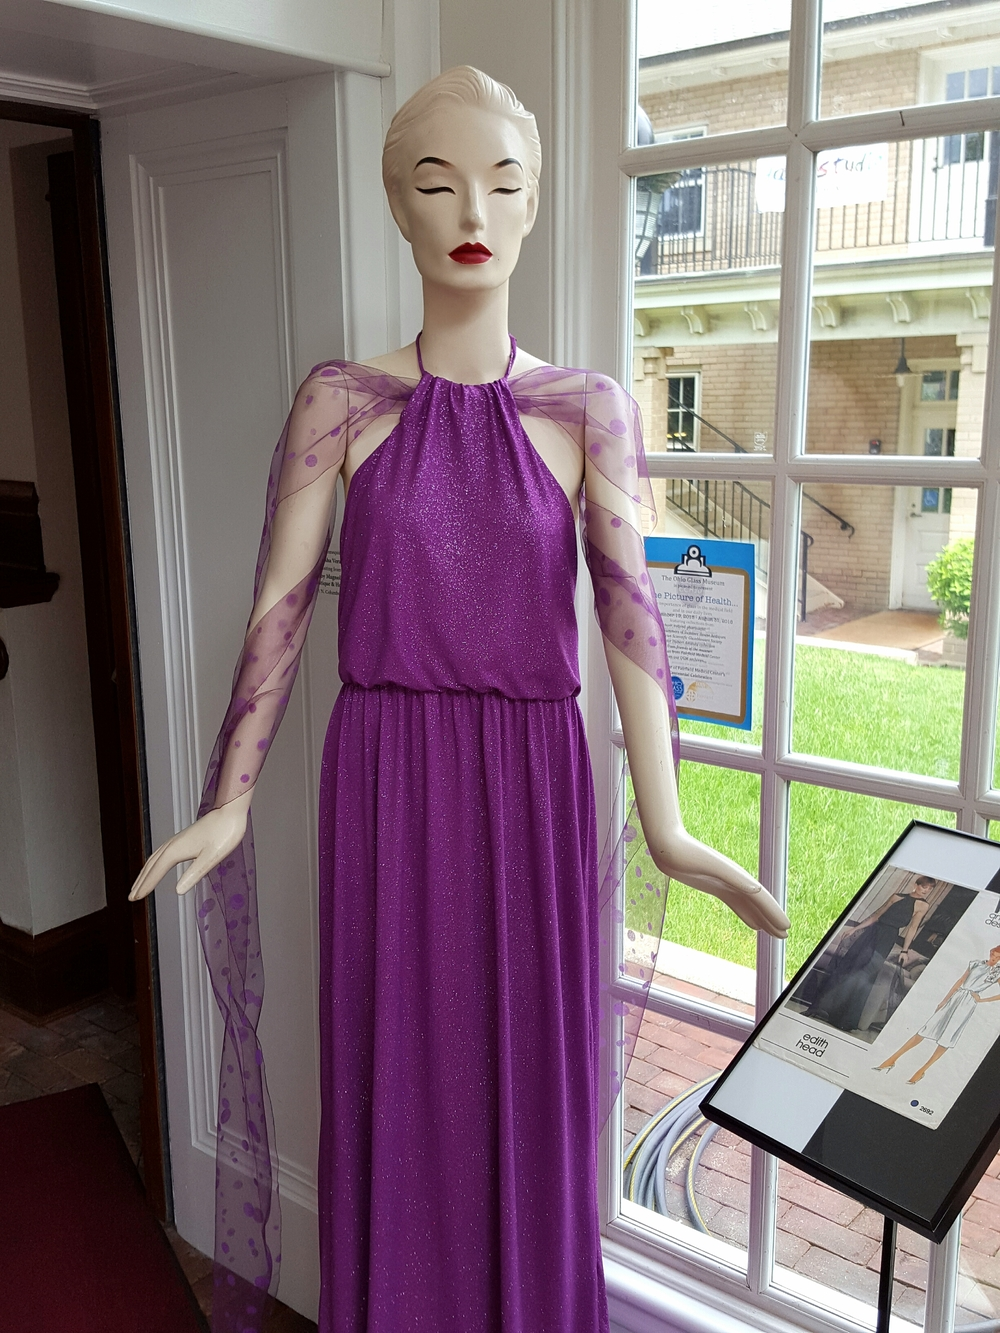 Original dress by Edith Head.